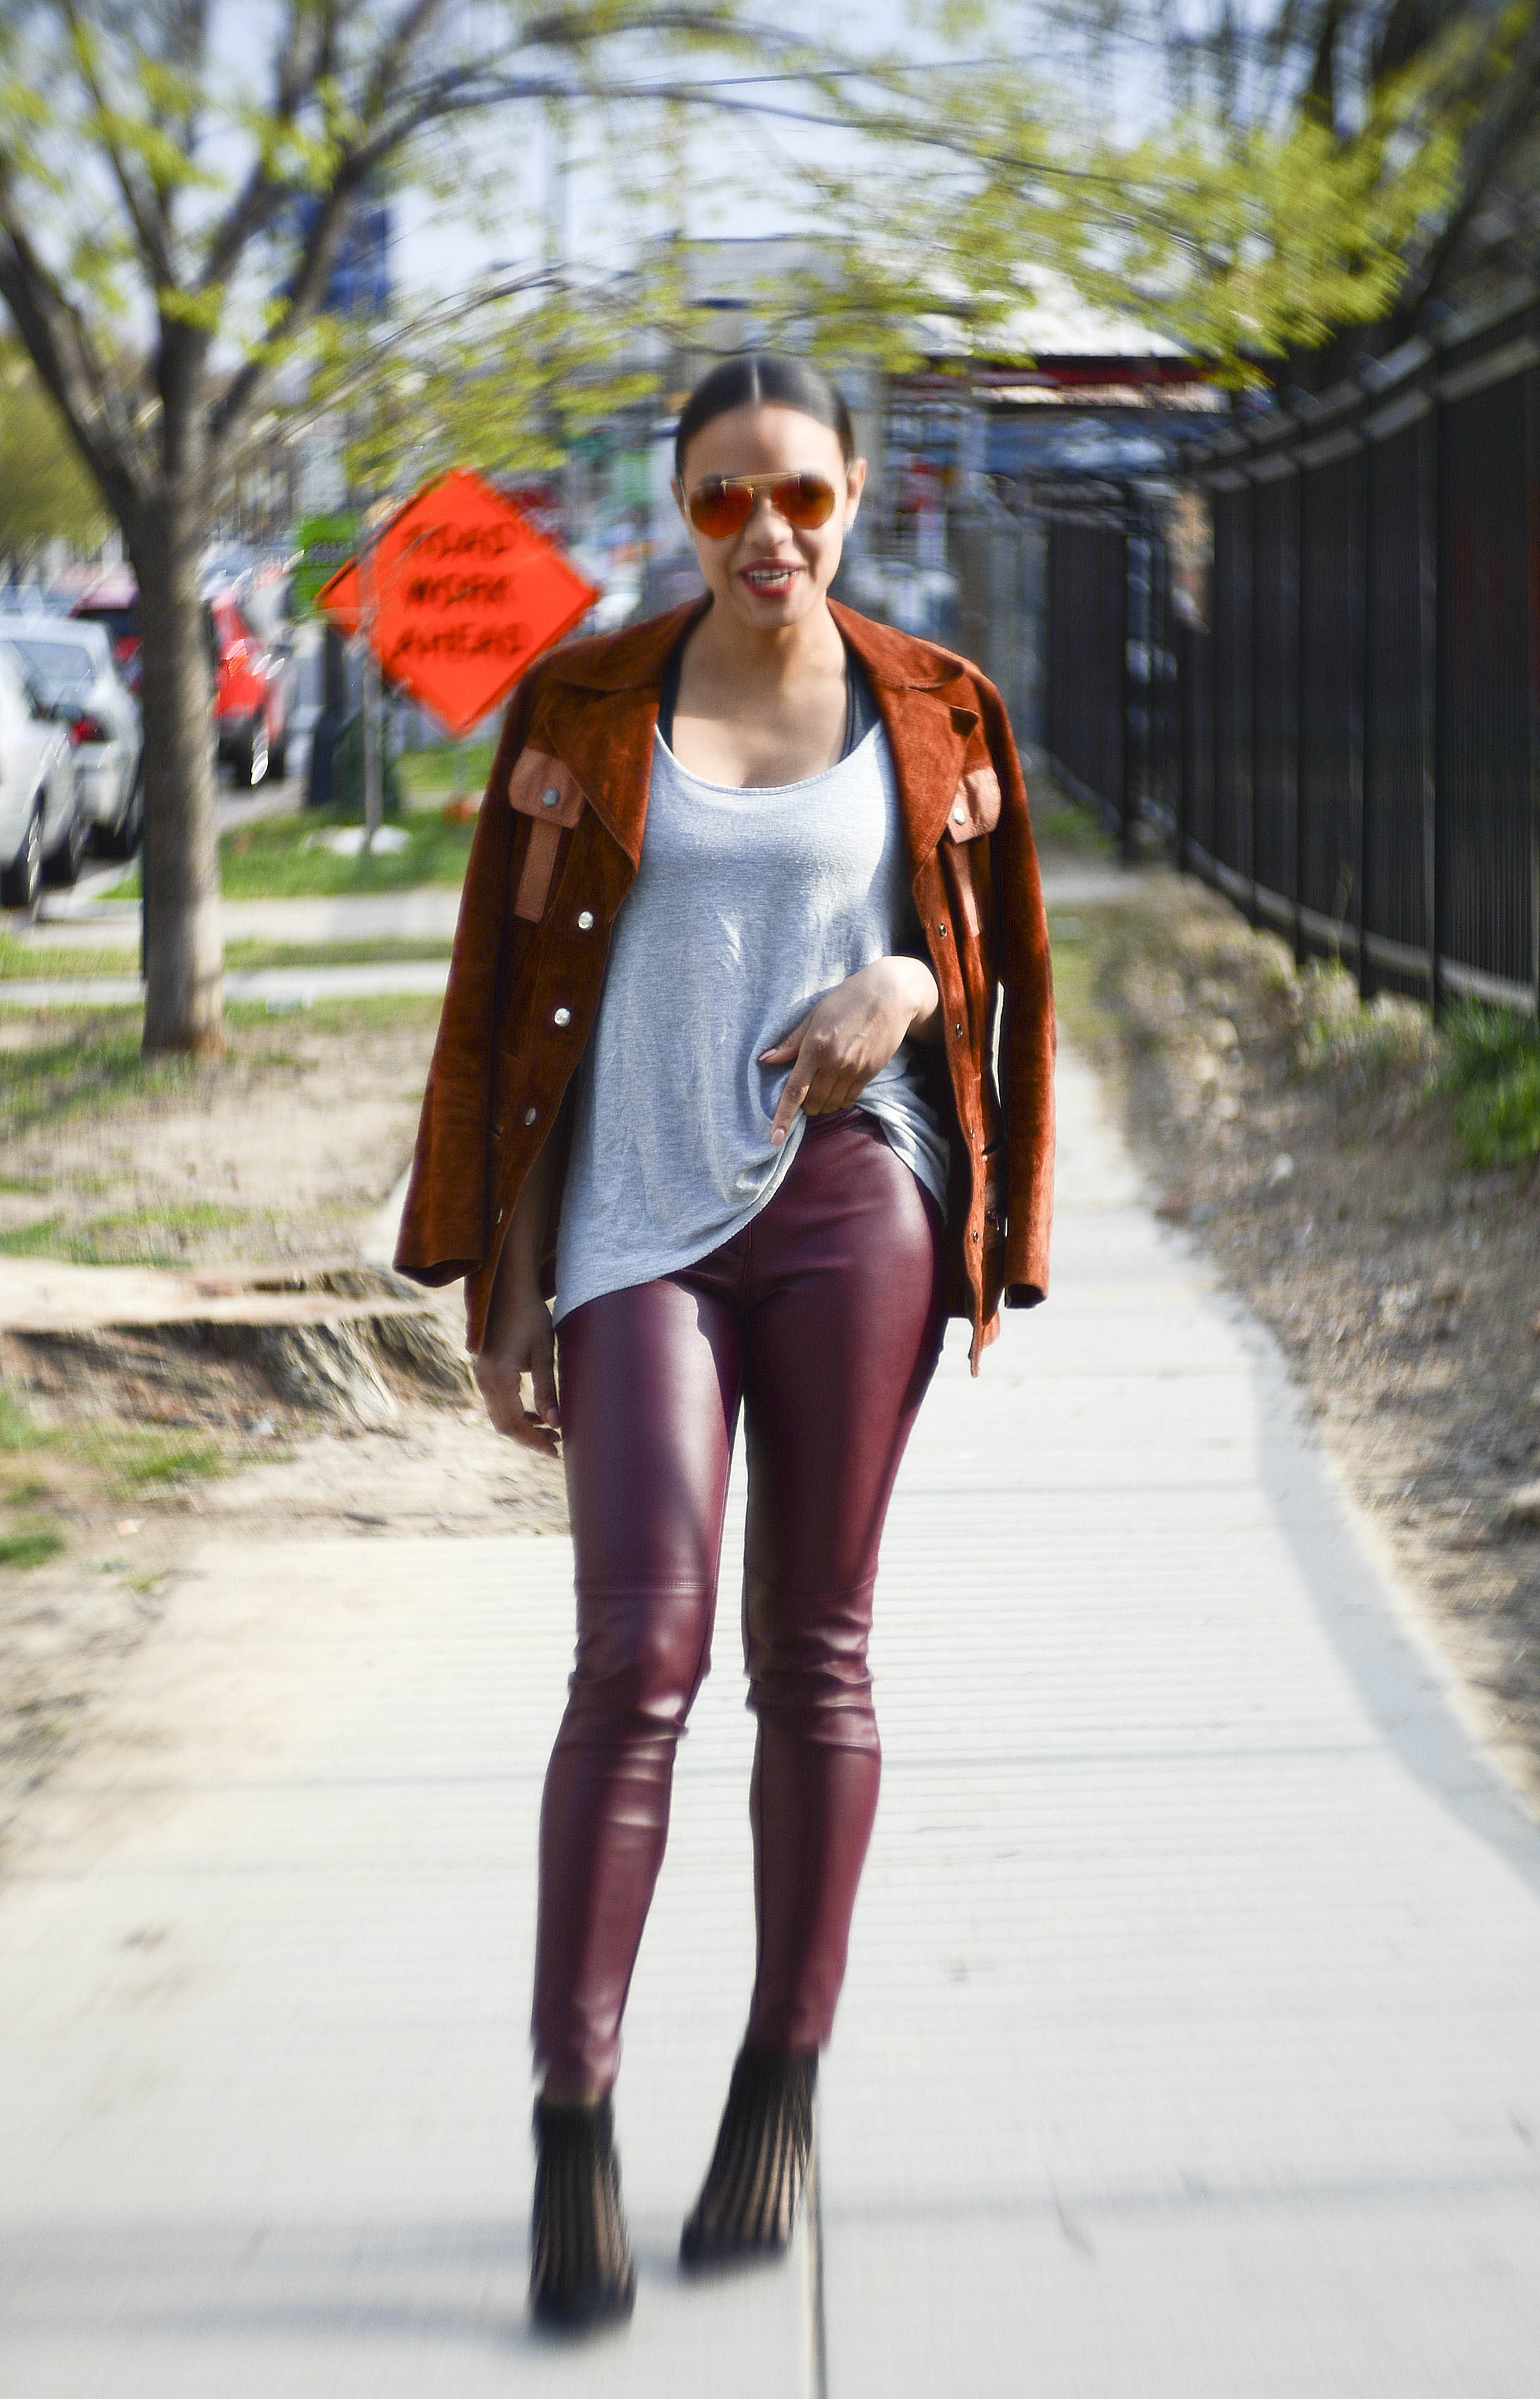 wearing: H&M pants, Forever21 top, Aldo shoes, vintage suede jacket, Ray Ban sunnies